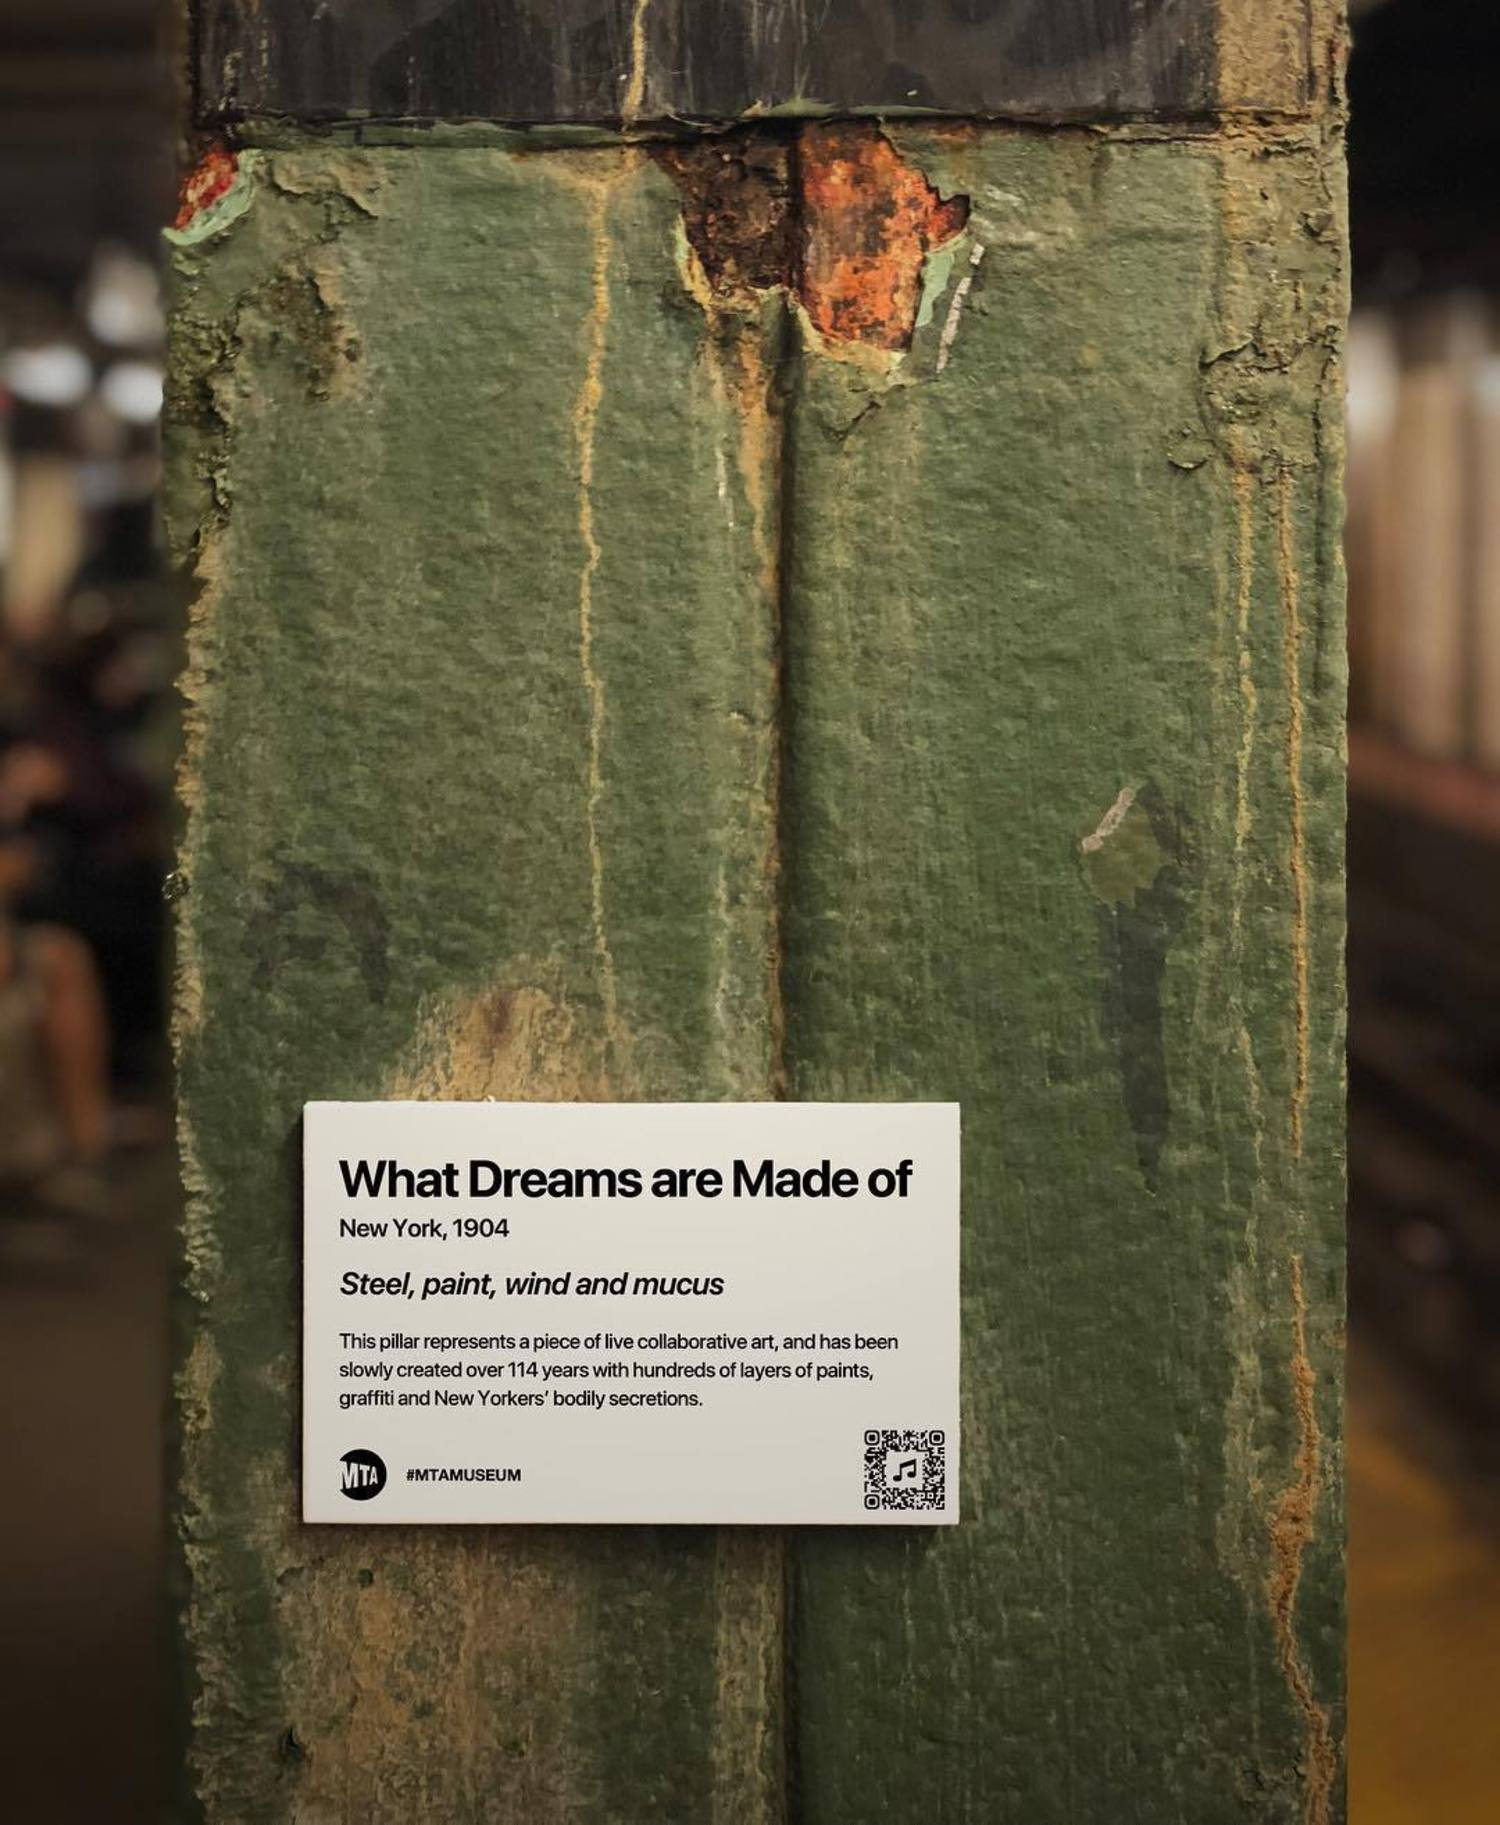 """MTA is not just old. It's the history of New York."" Title: What Dreams Are Made Of, 1904 This pillar represents a piece of live collaborative art, and has been slowly created over 114 years with hundreds of layers of paints, graffiti and New Yorkers' bodily secretions. . . . #mtamuseum #mta #modernart #newyorksubway #newyorker #nyc #newyork #bedfordave #installationart #artist #artmuseum #masterpiece #art #history #ny #subway #station #hipster #brooklyn #williamsburg #mtasubway #newyorkcity #cool #moma #metropolitanmuseumofart #whitneymuseum #brooklynmuseum #momaps1 #guggenheim #artwork"